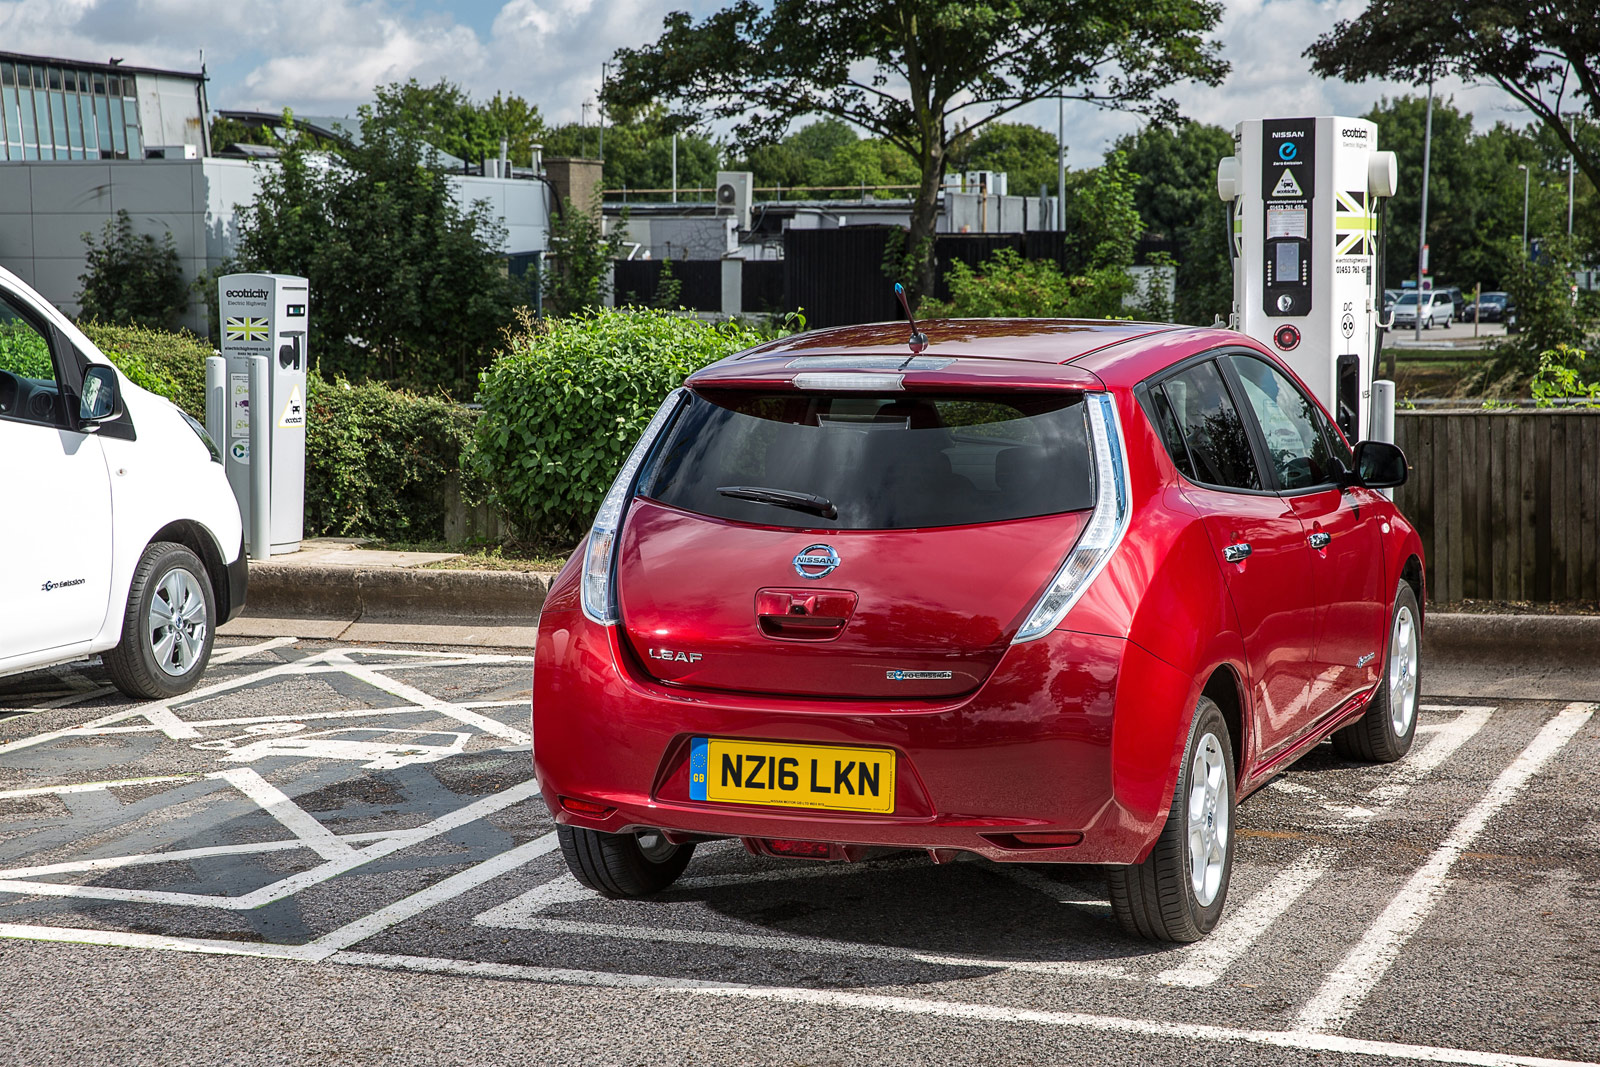 Number of electric car charging locations to overtake petrol stations by August 2020